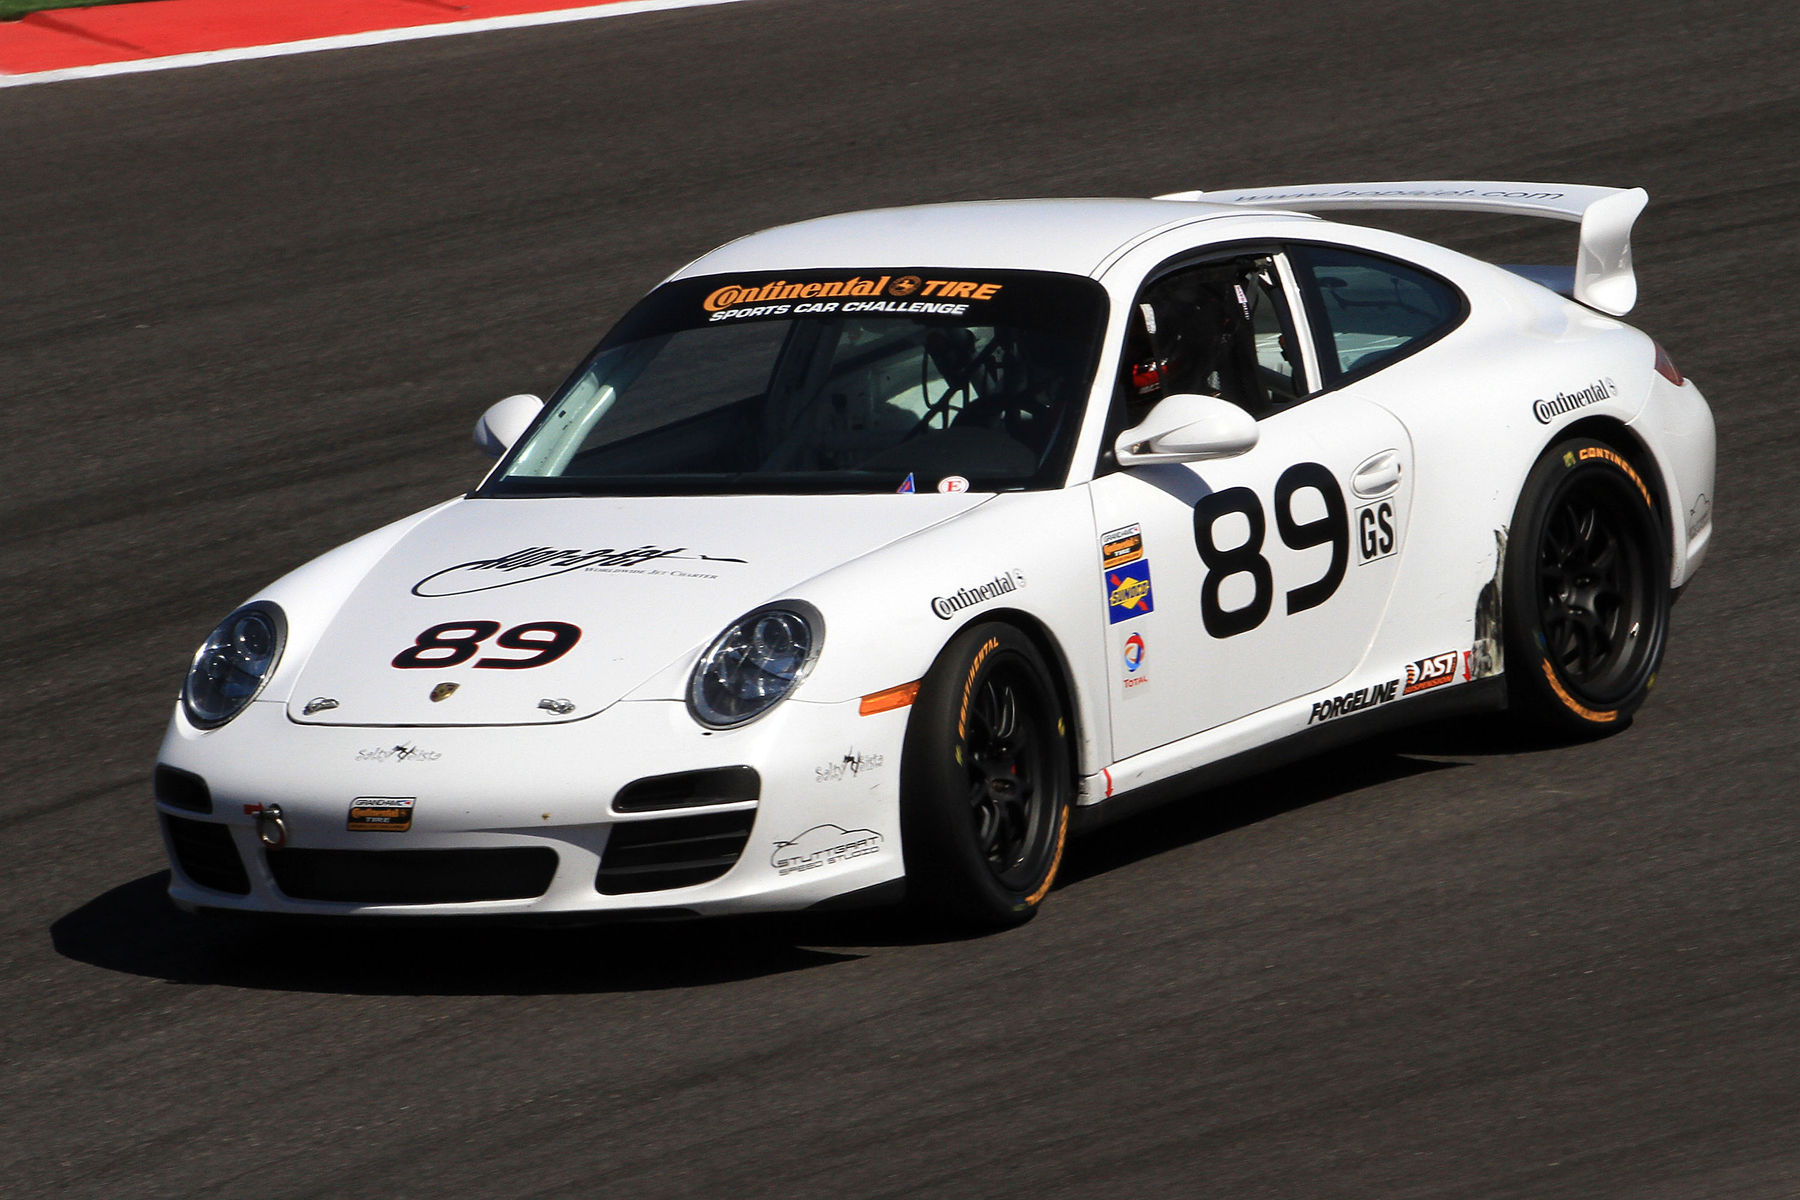 | Style, precision and speed are what makes up the 89 Porsche, maneuvering the COTA track on their Continental Tires.